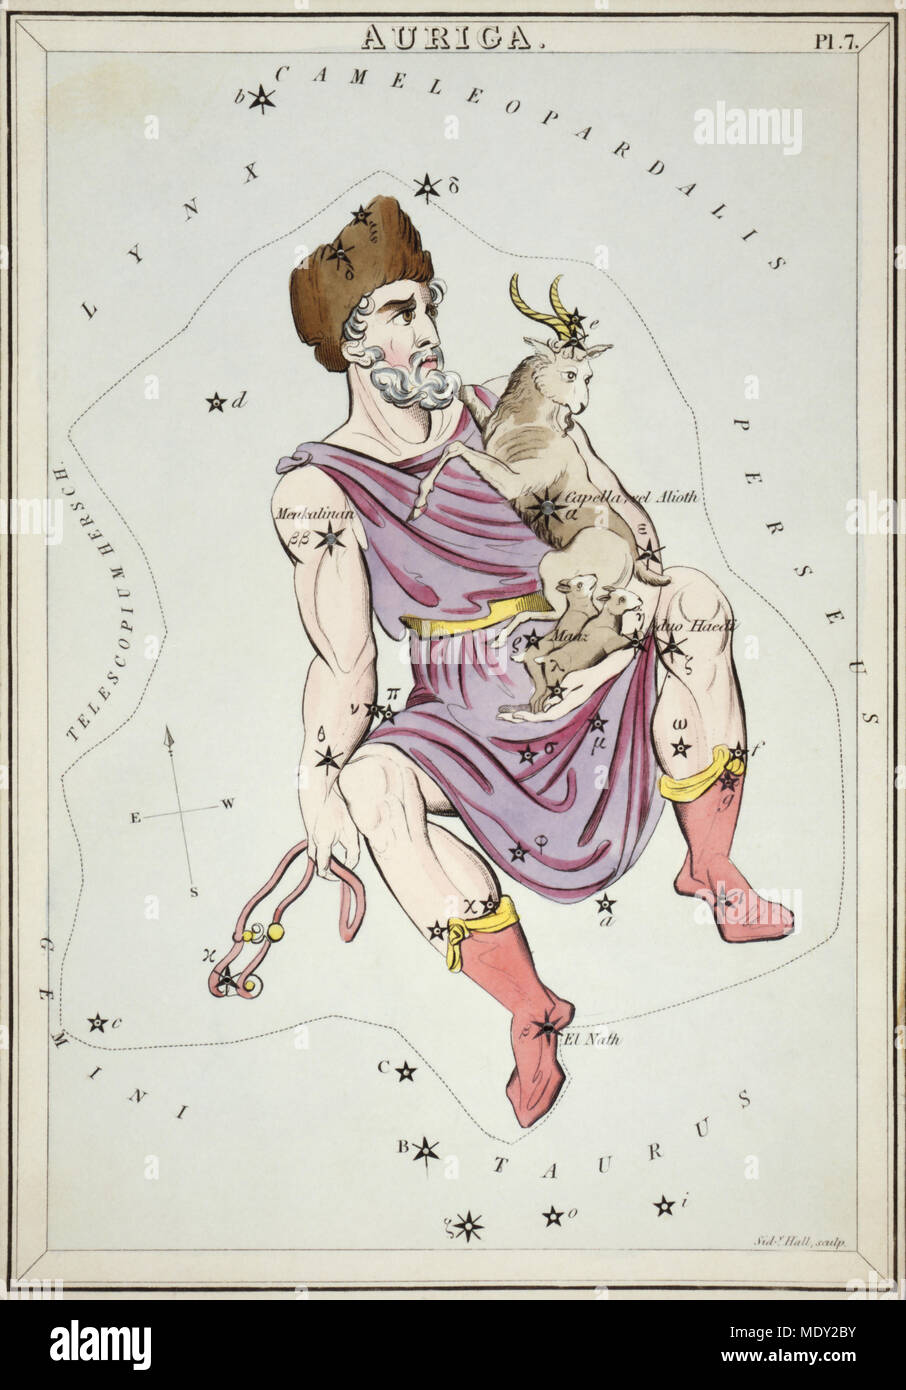 Auriga. Card Number 7 from Urania's Mirror, or A View of the Heavens, one of a set of 32 astronomical star chart cards engraved by Sidney Hall and publshed 1824. - Stock Image